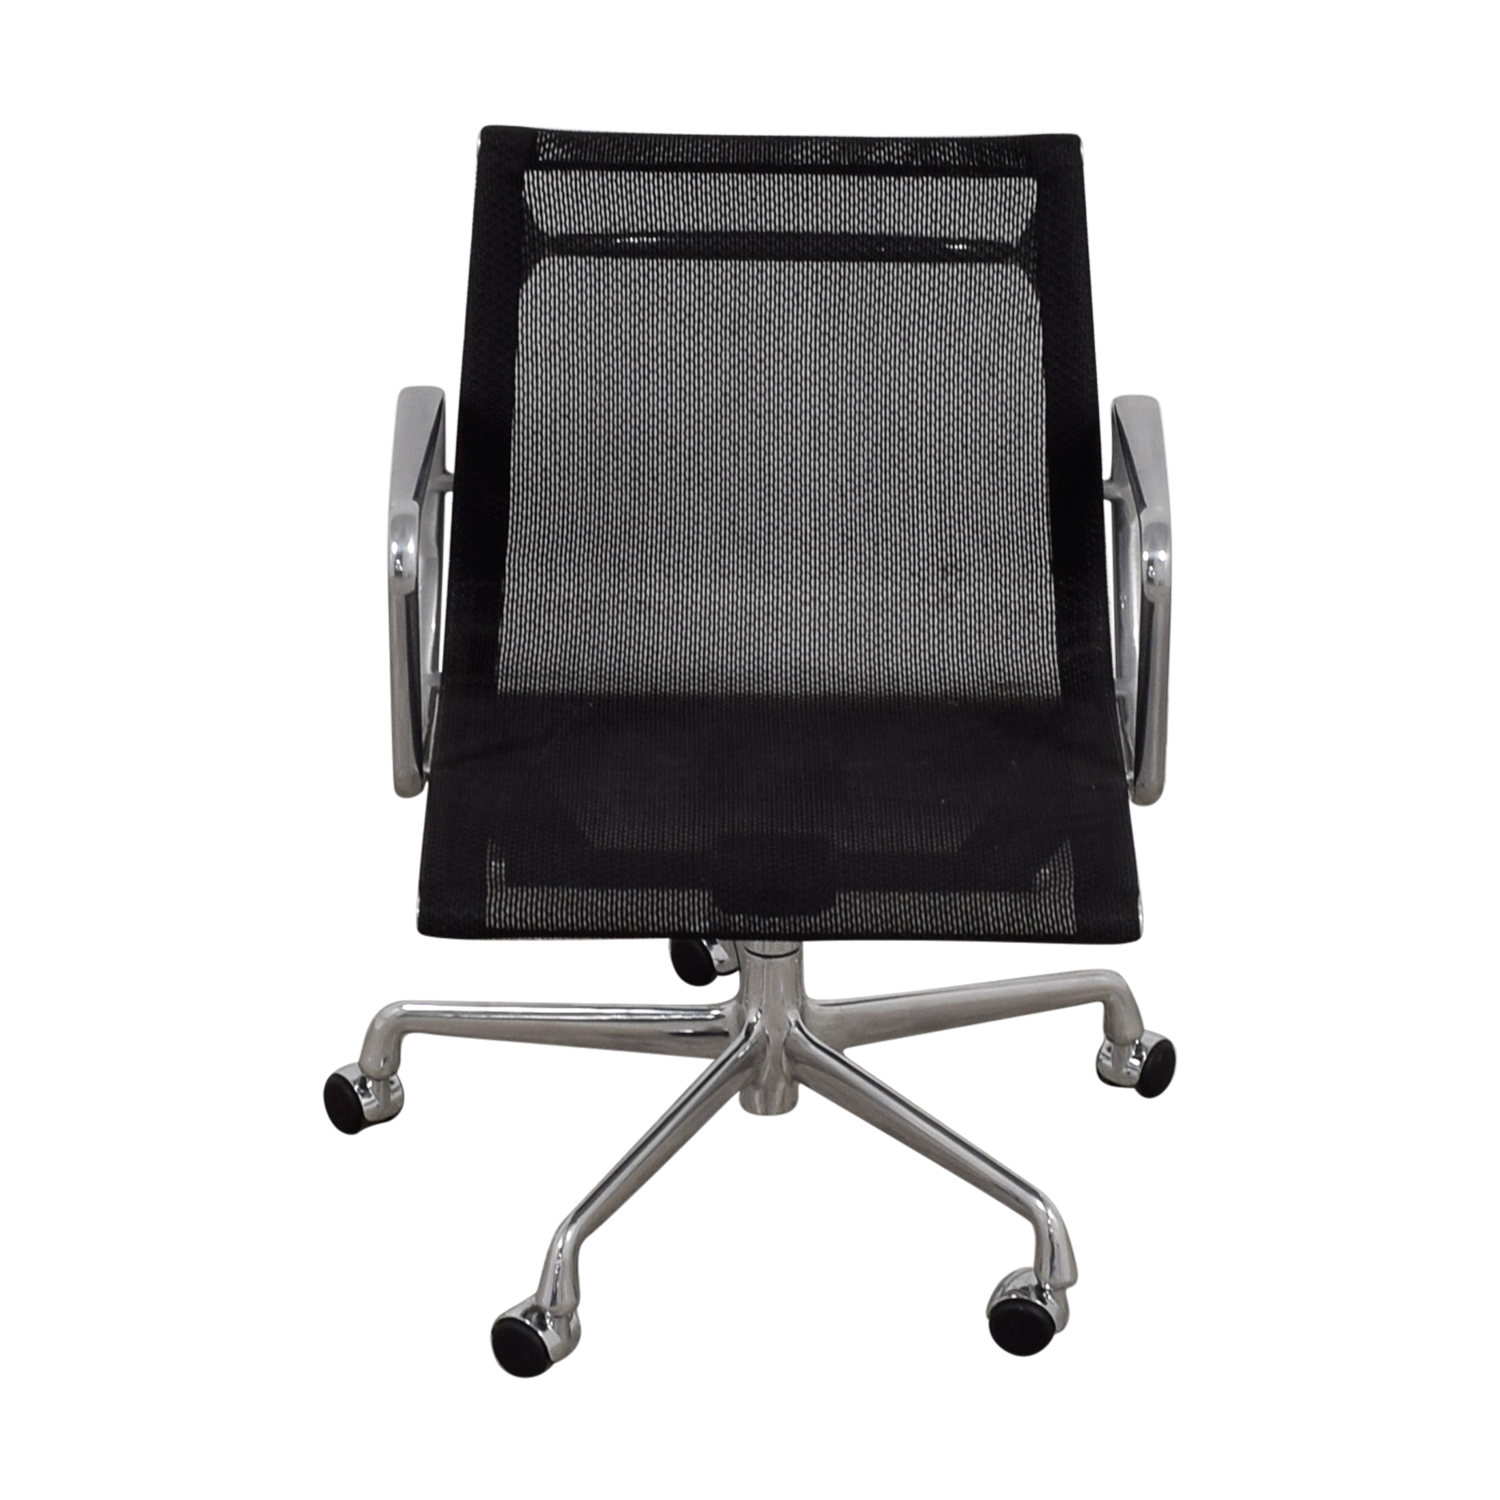 Eames Aluminum Group Eames Aluminum Group Management Mesh Chair price